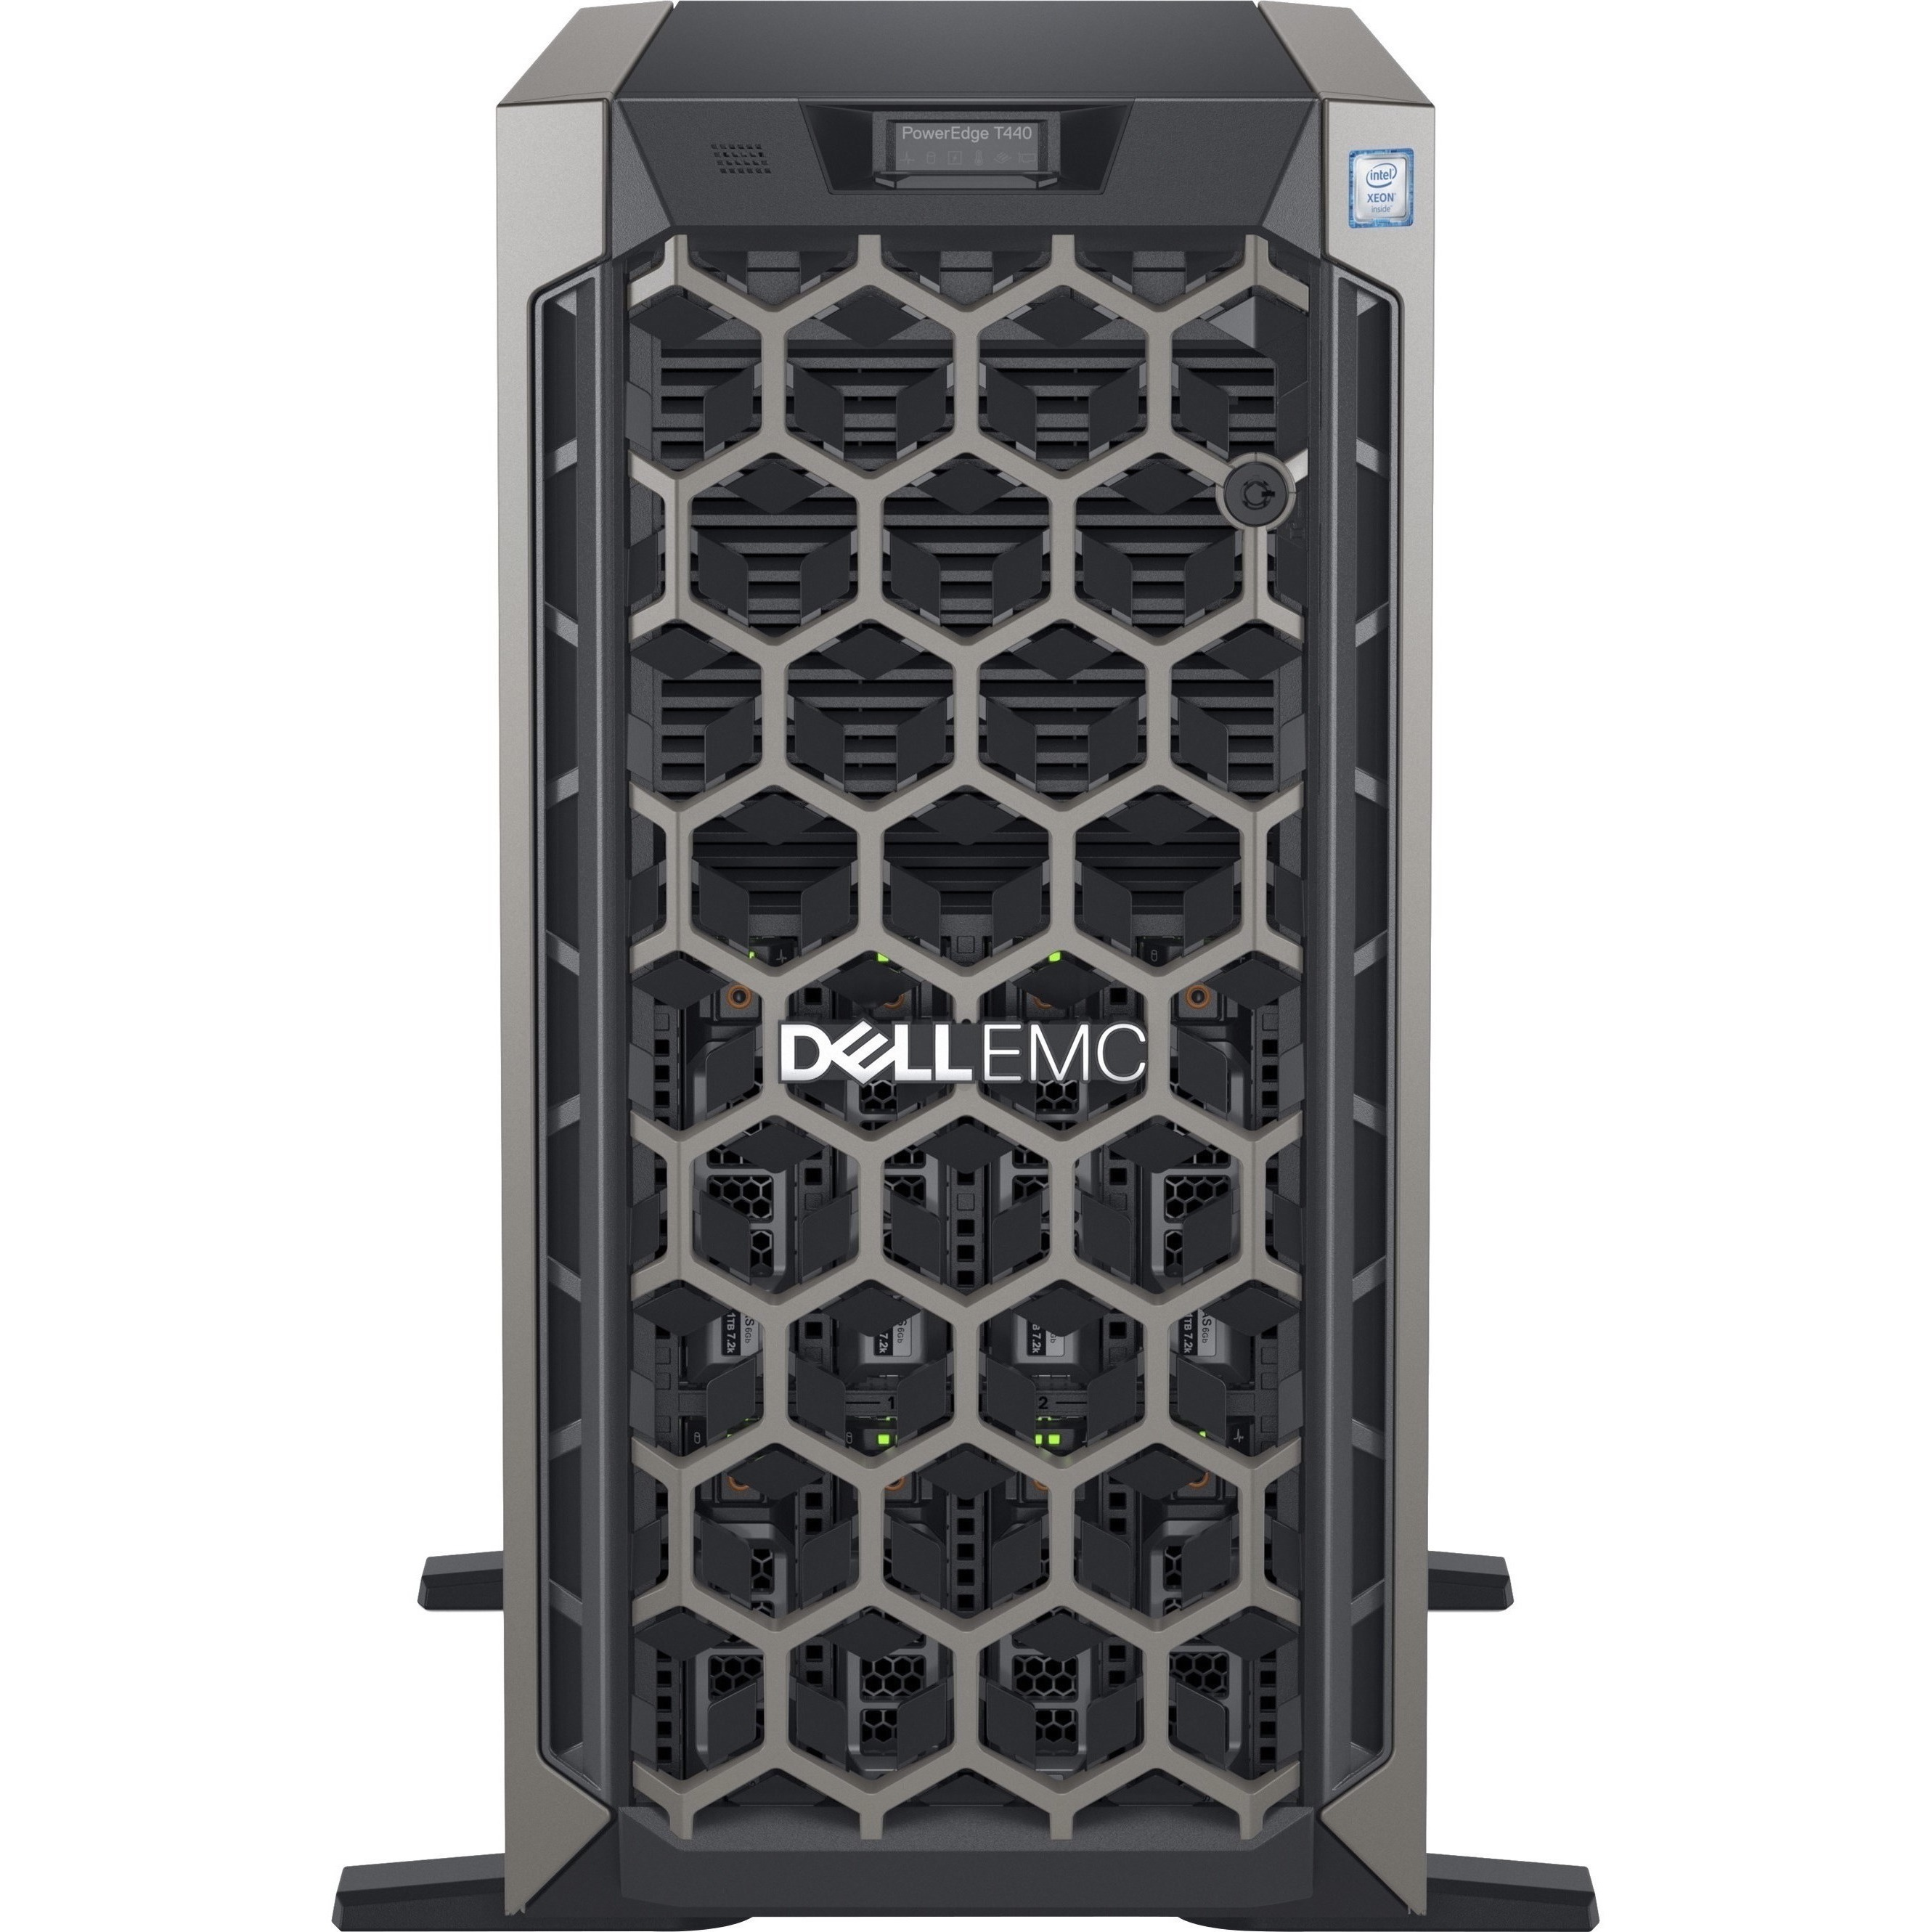 Dell EMC PowerEdge T440 5U Tower Server - 1 x Intel Xeon